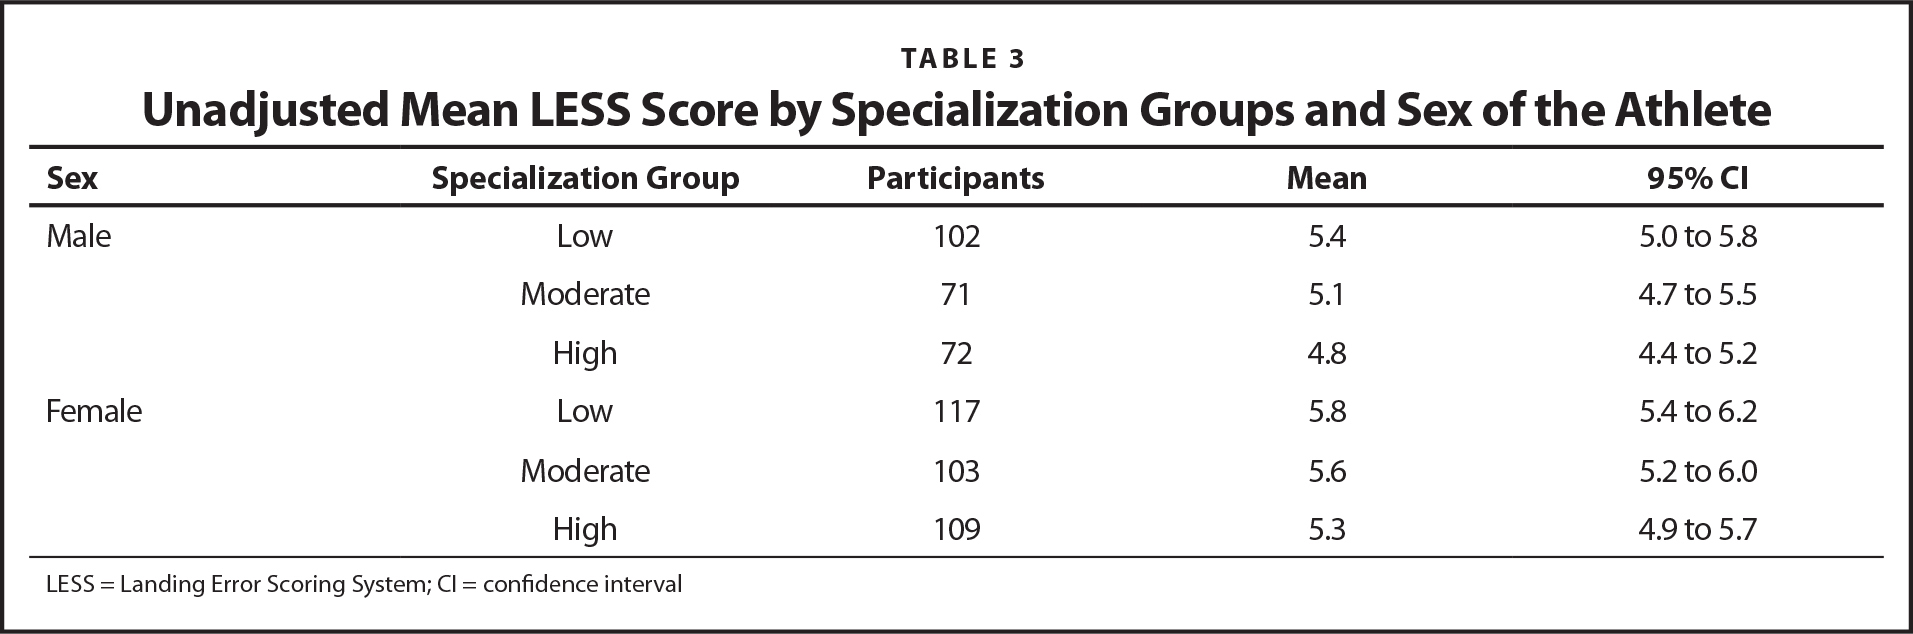 Unadjusted Mean LESS Score by Specialization Groups and Sex of the Athlete